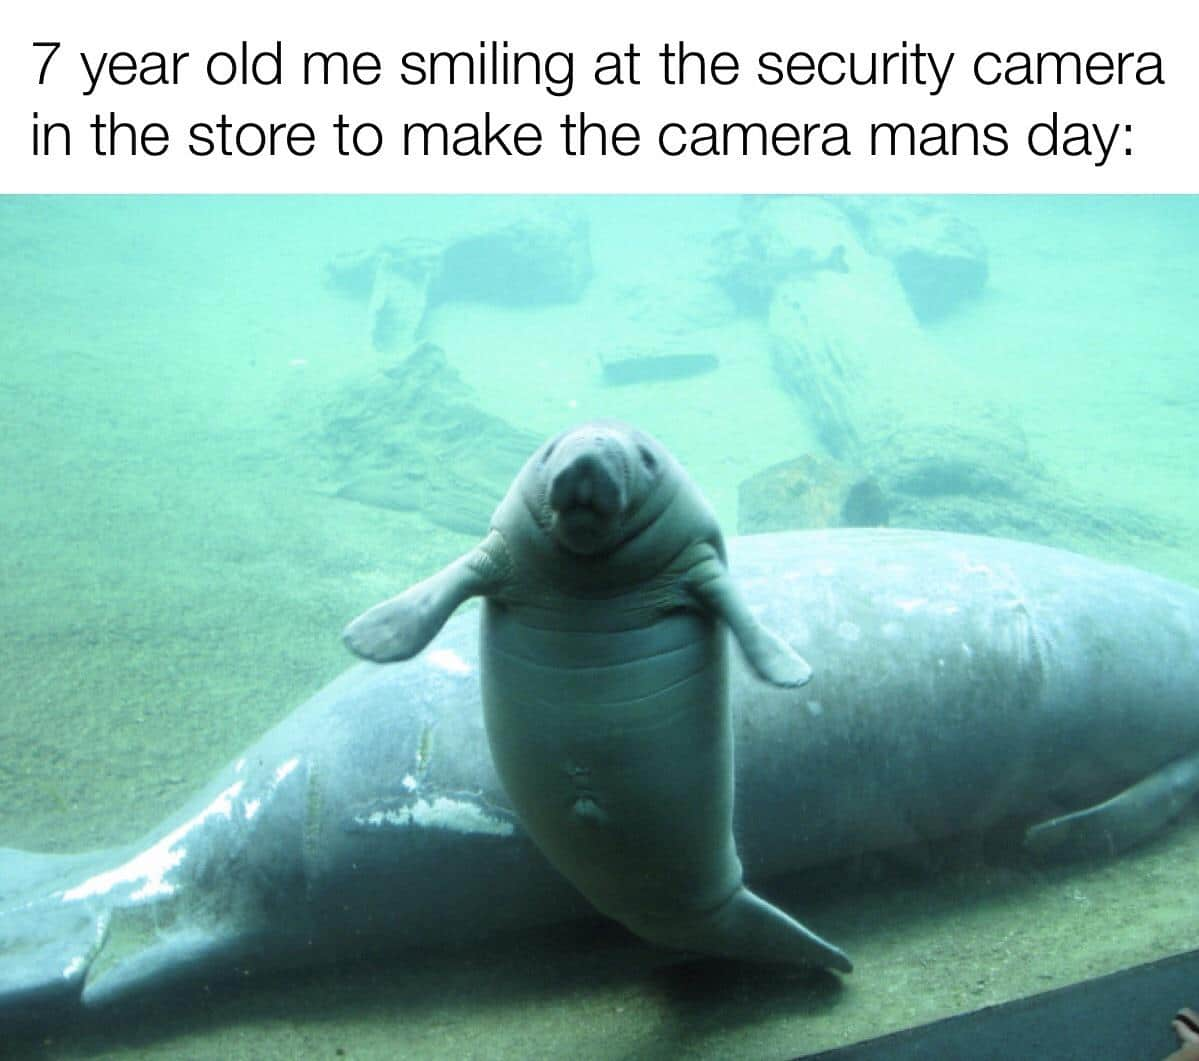 Wholesome memes,  Wholesome Memes Wholesome memes,  text: 7 year old me smiling at the security camera in the store to make the camera mans day: